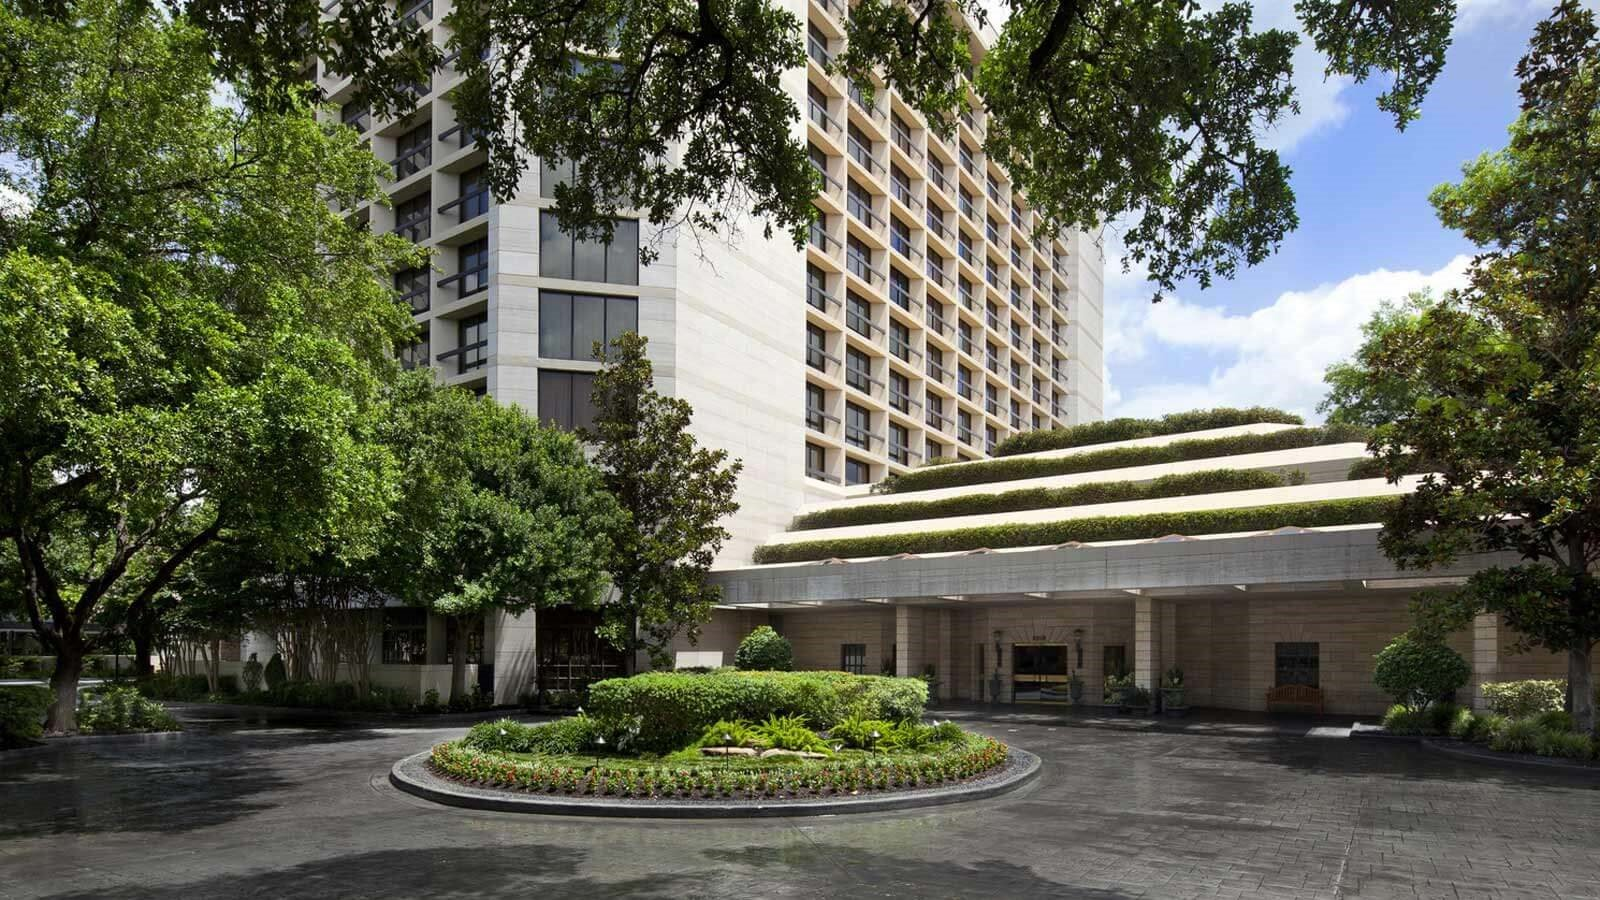 Image of St. Regis Houston